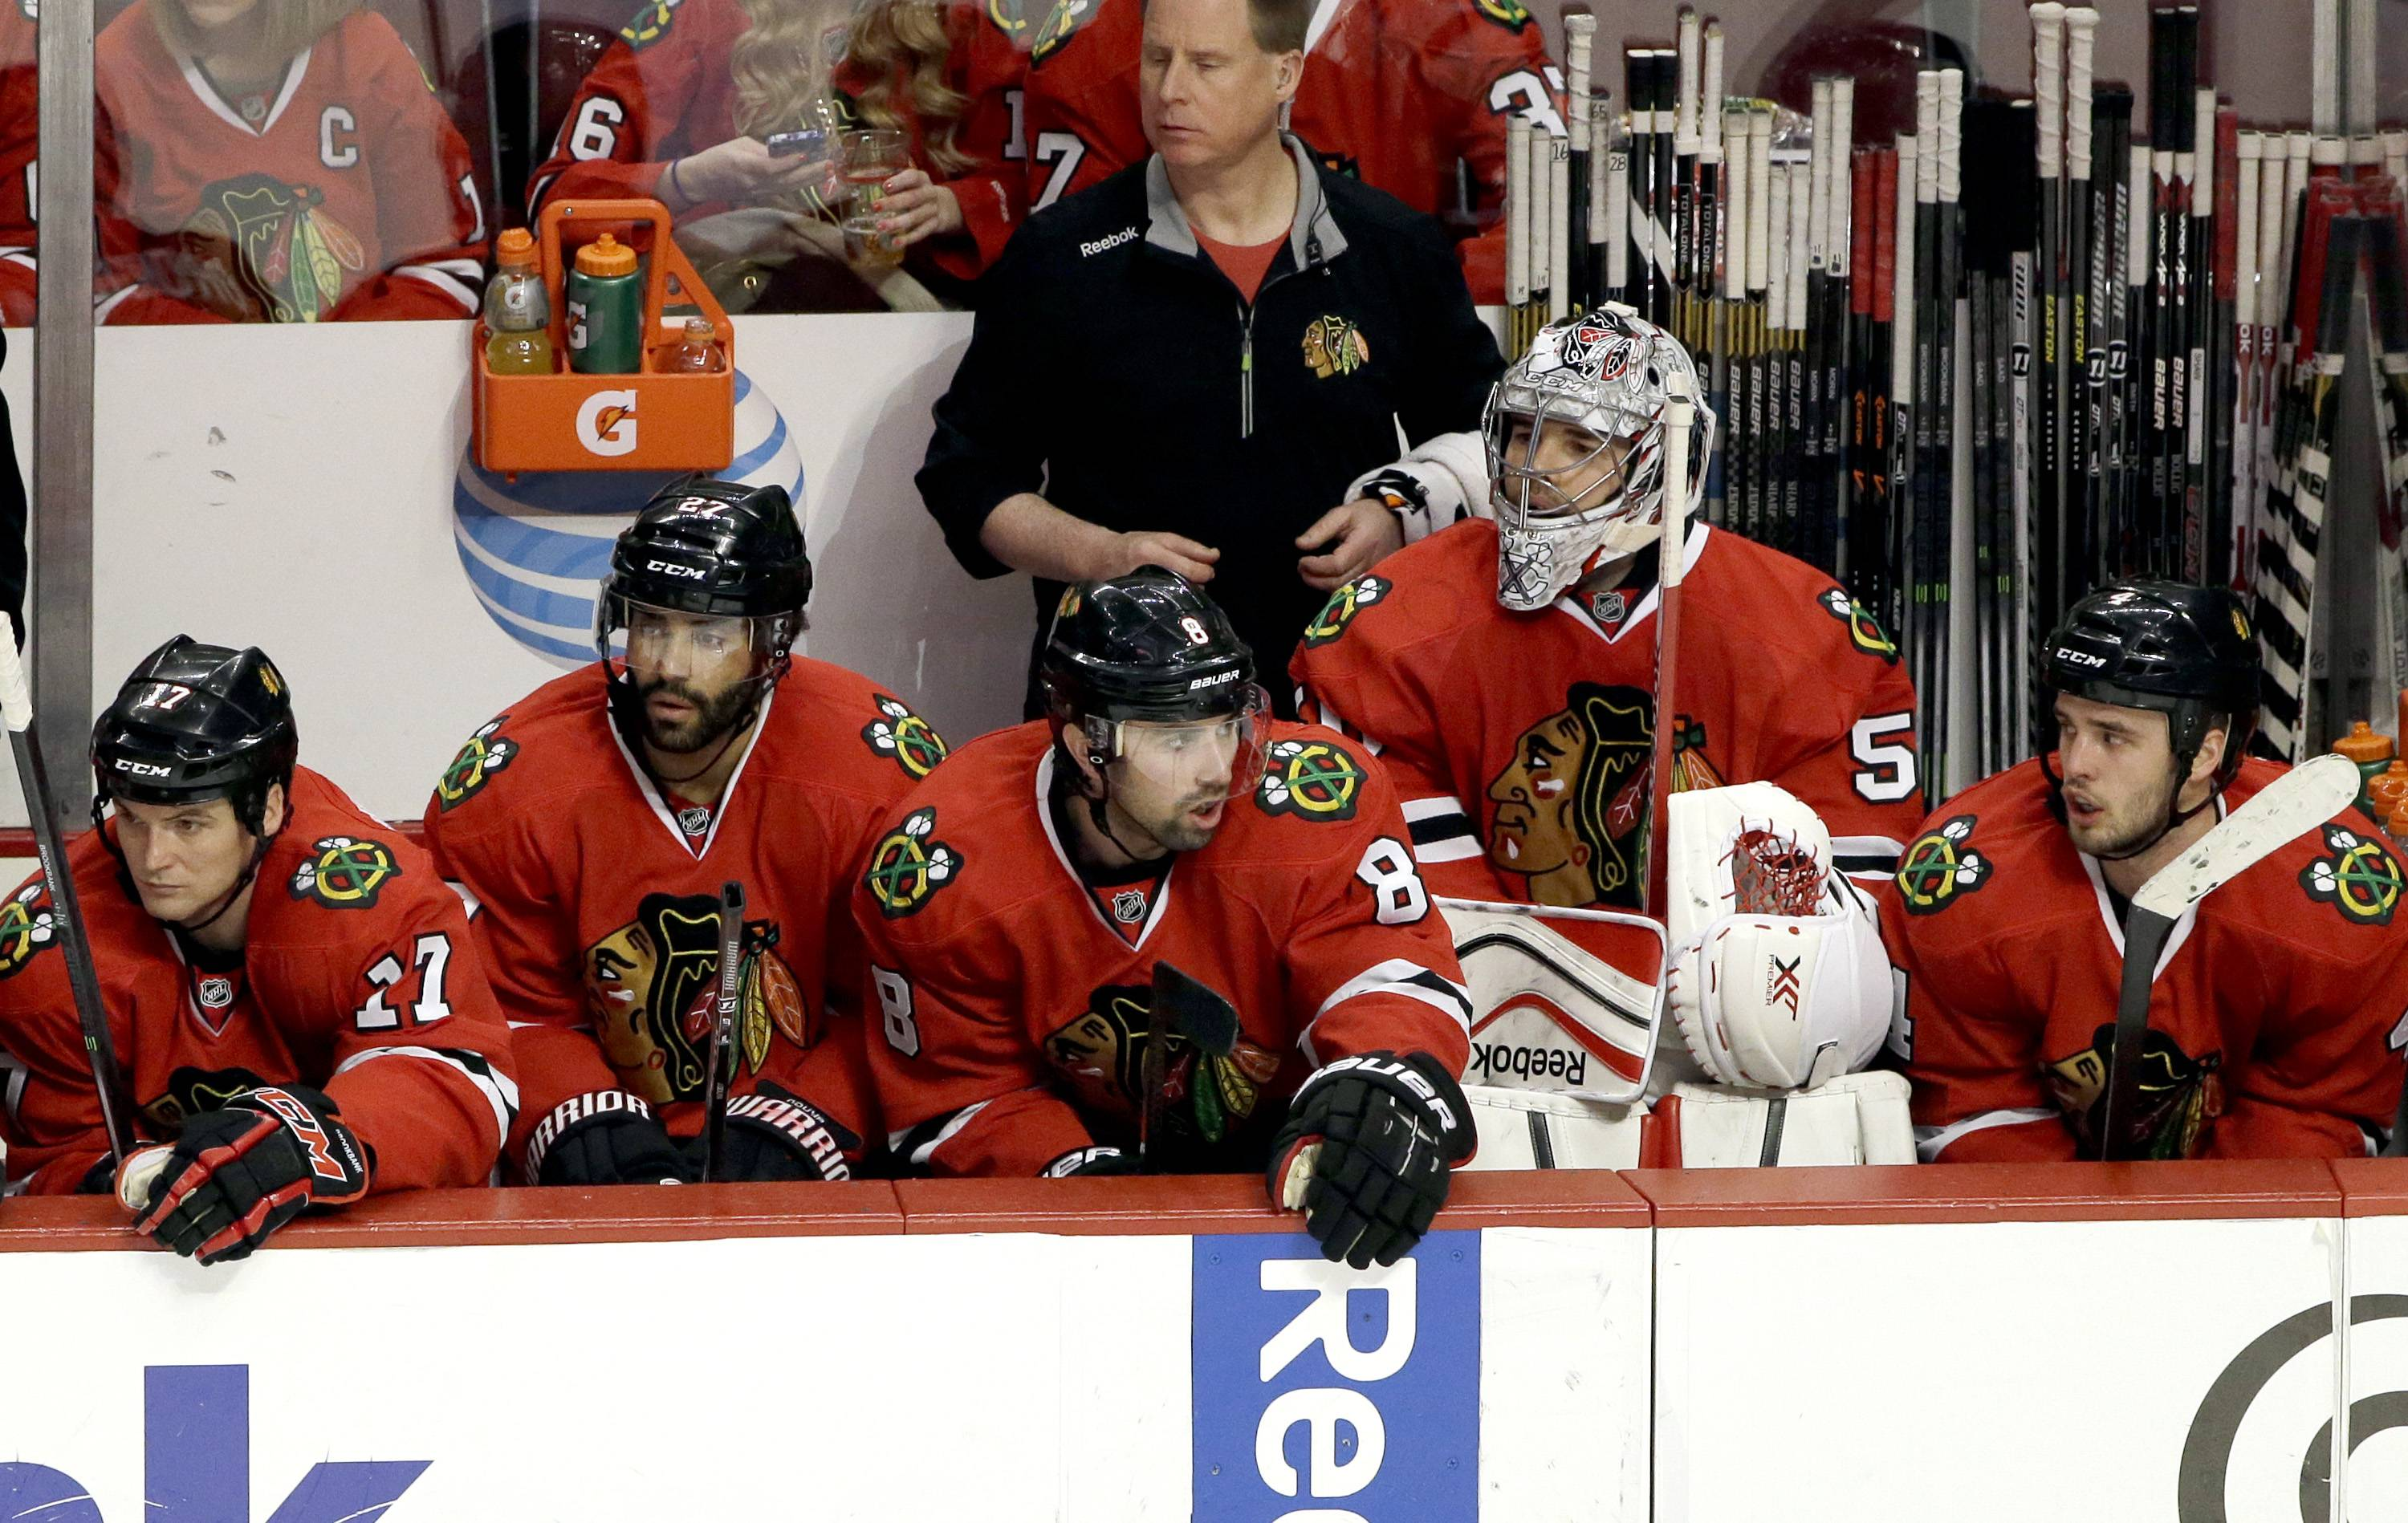 Predators frustrate Blackhawks again